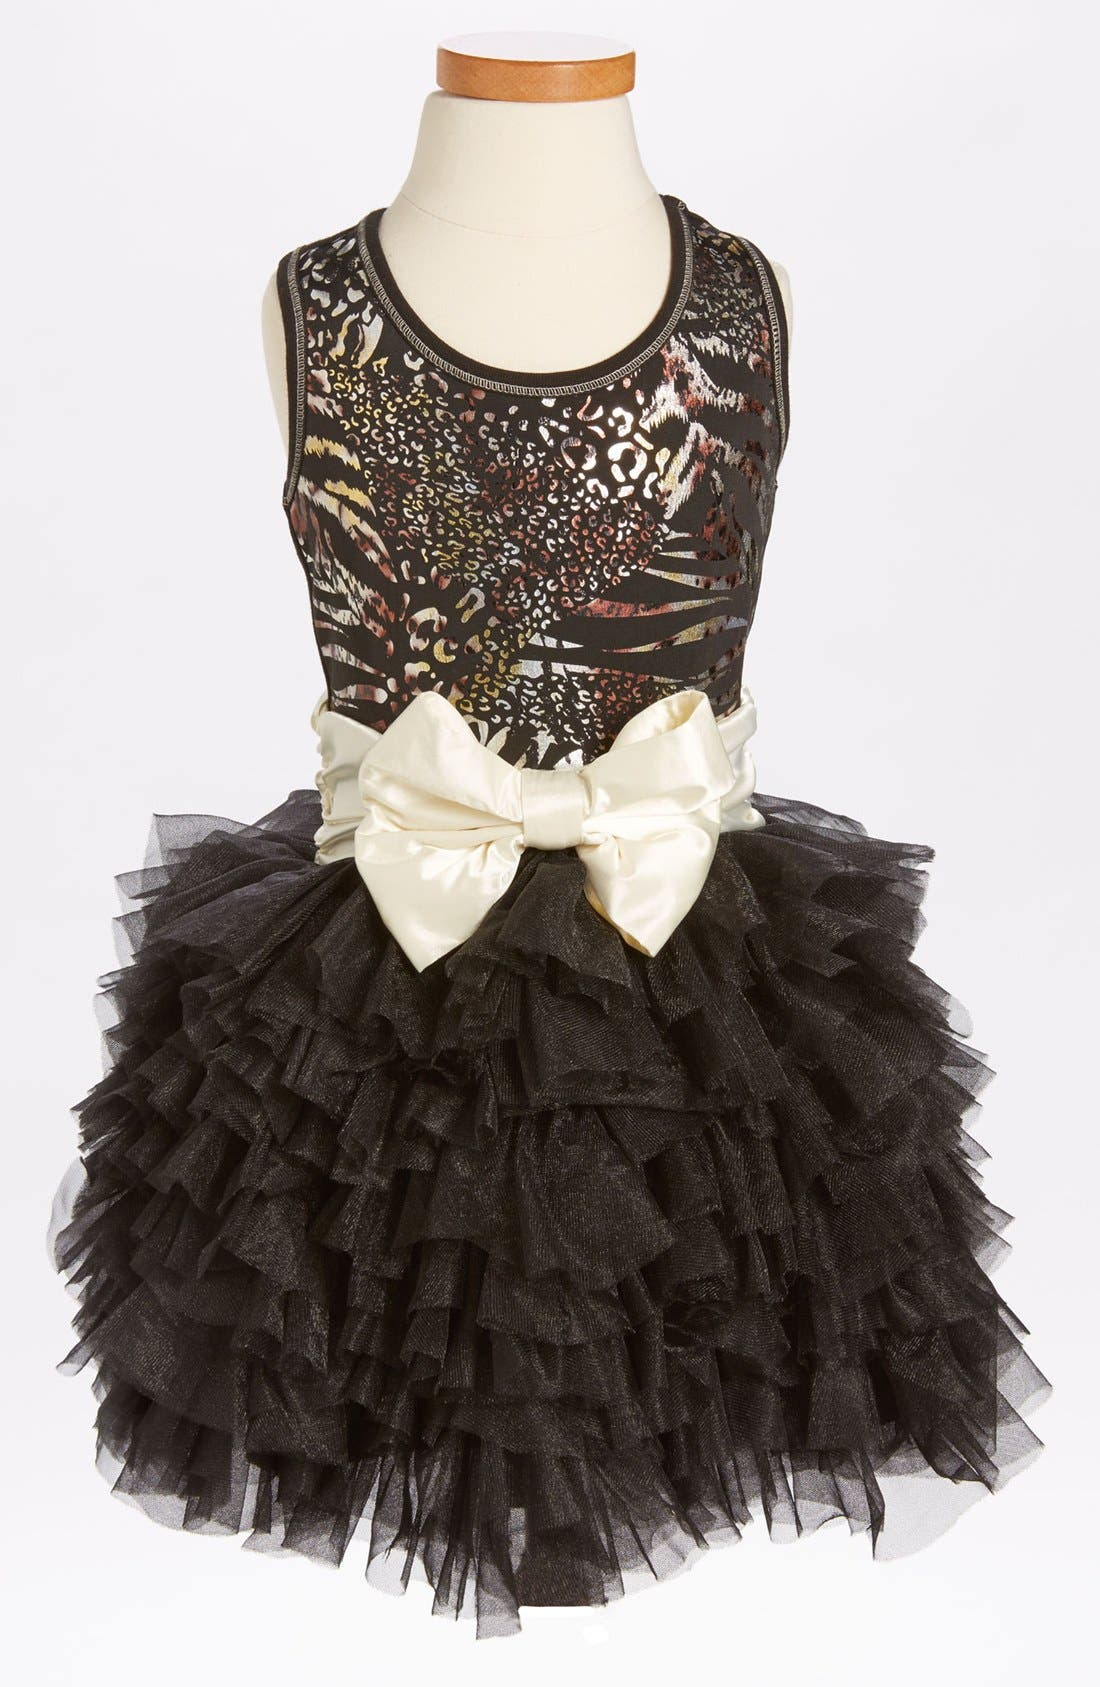 Main Image - Ooh! La, La! Couture 'Wow - Metallic Dream' Dress (Little Girls & Big Girls) (Online Only)